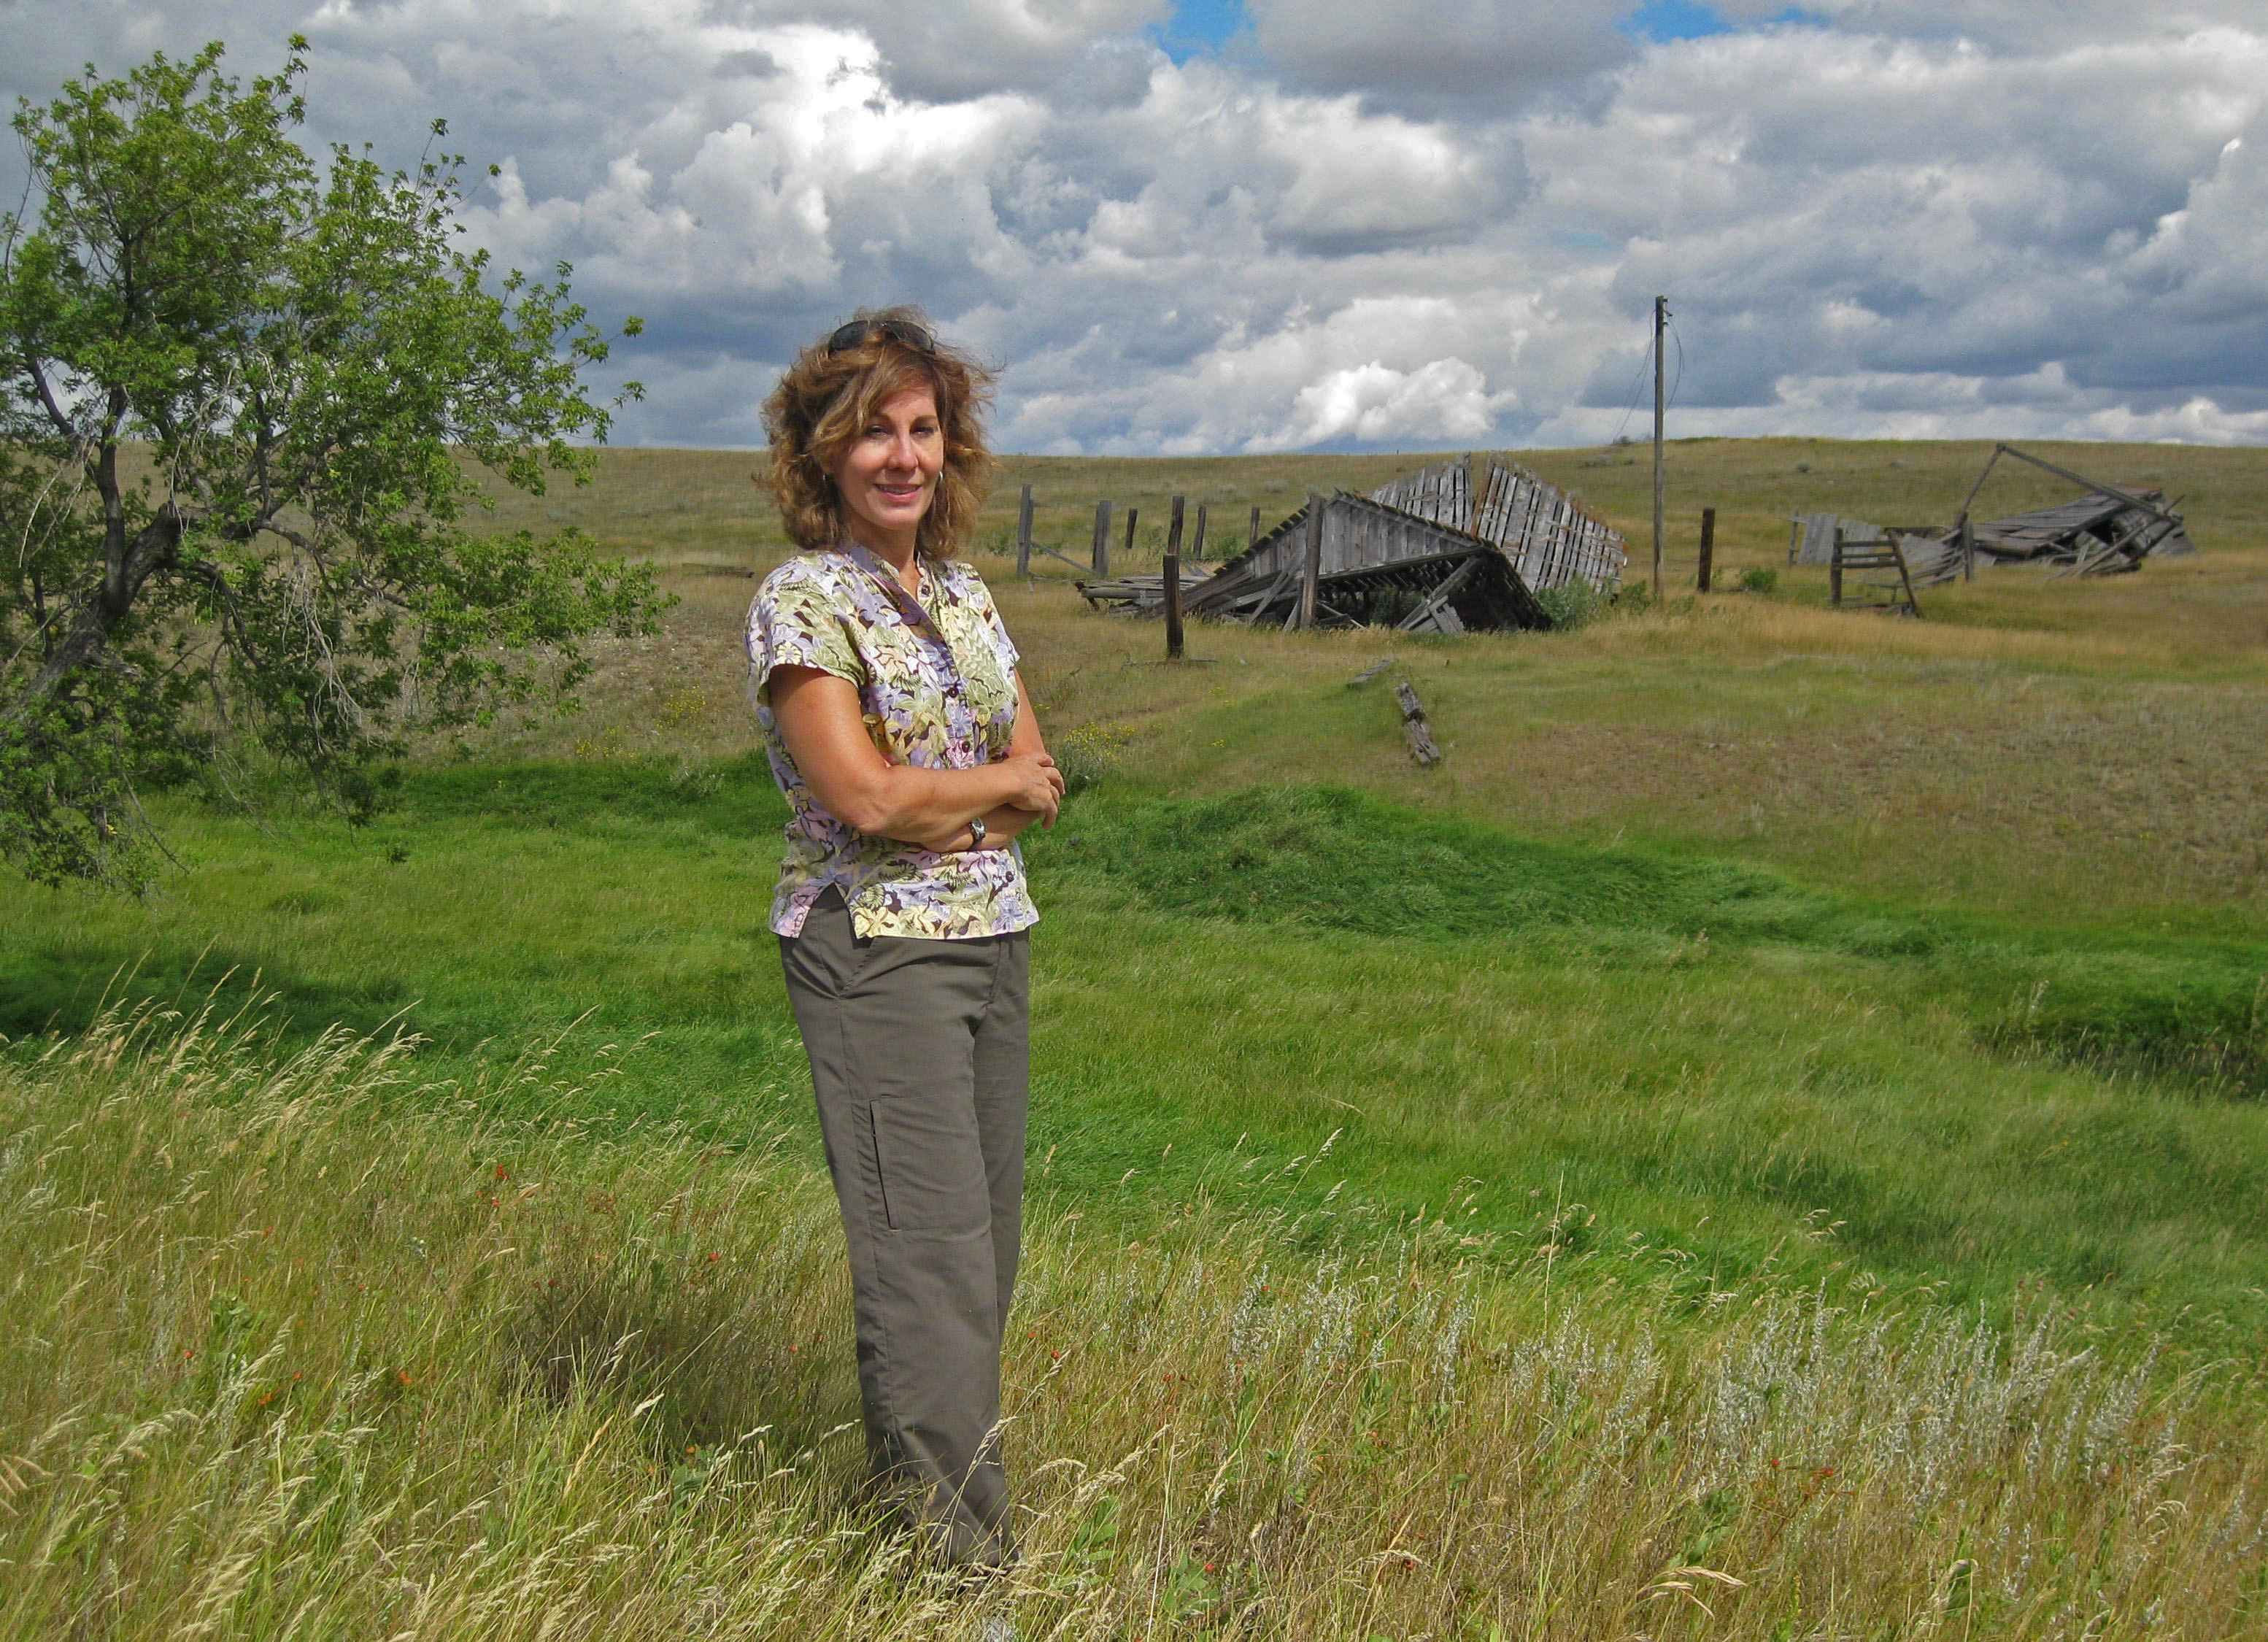 I'm standing in the place my mother was born, on her family homestead in northeastern Montana.(2011)